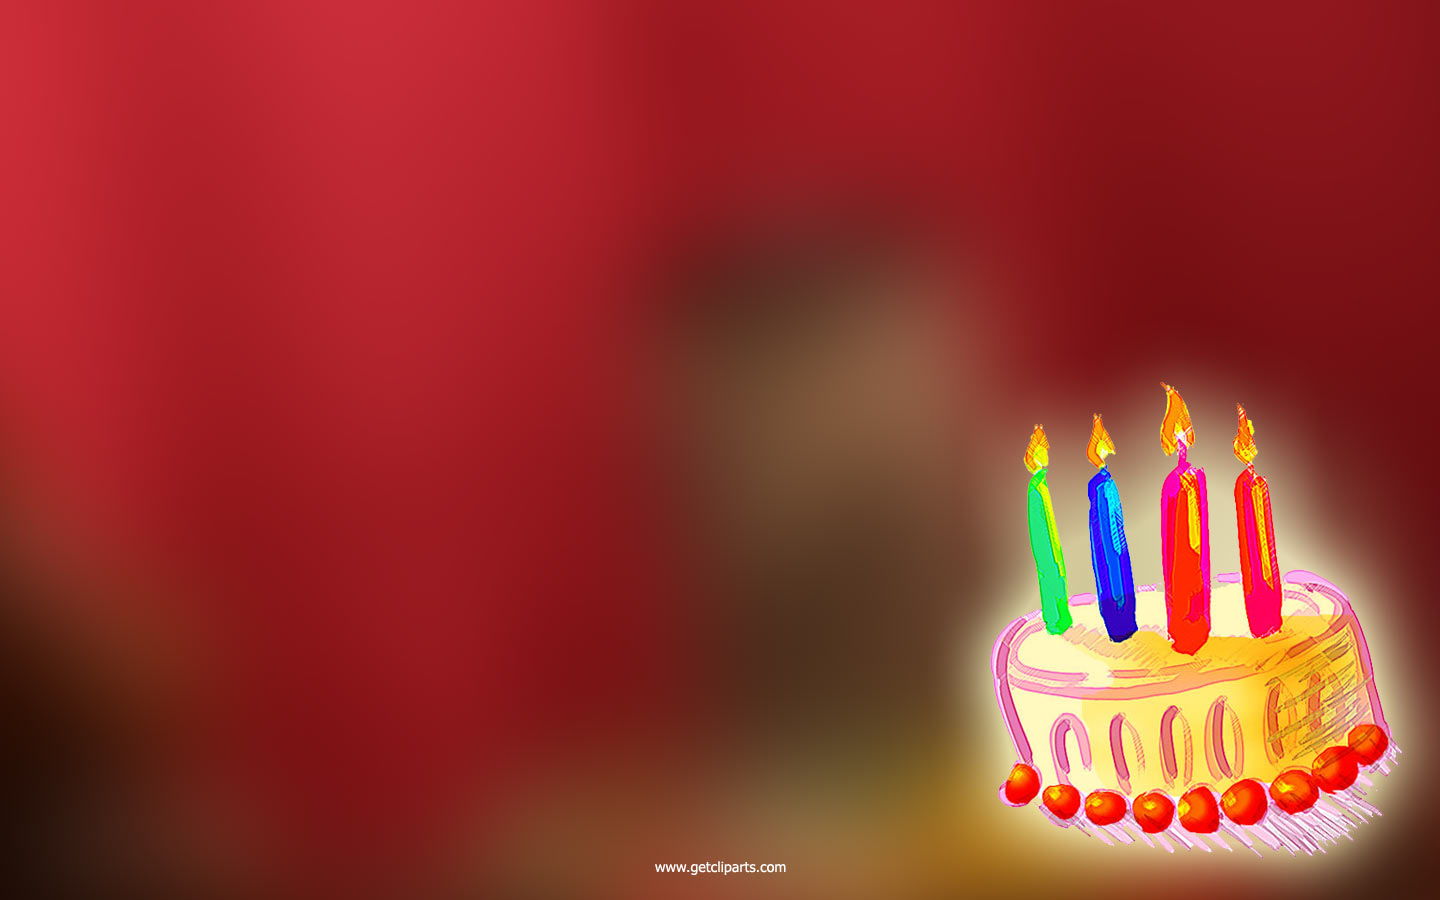 Getcliparts Visual Communication Designs Blog Archive Happy Birthday Background